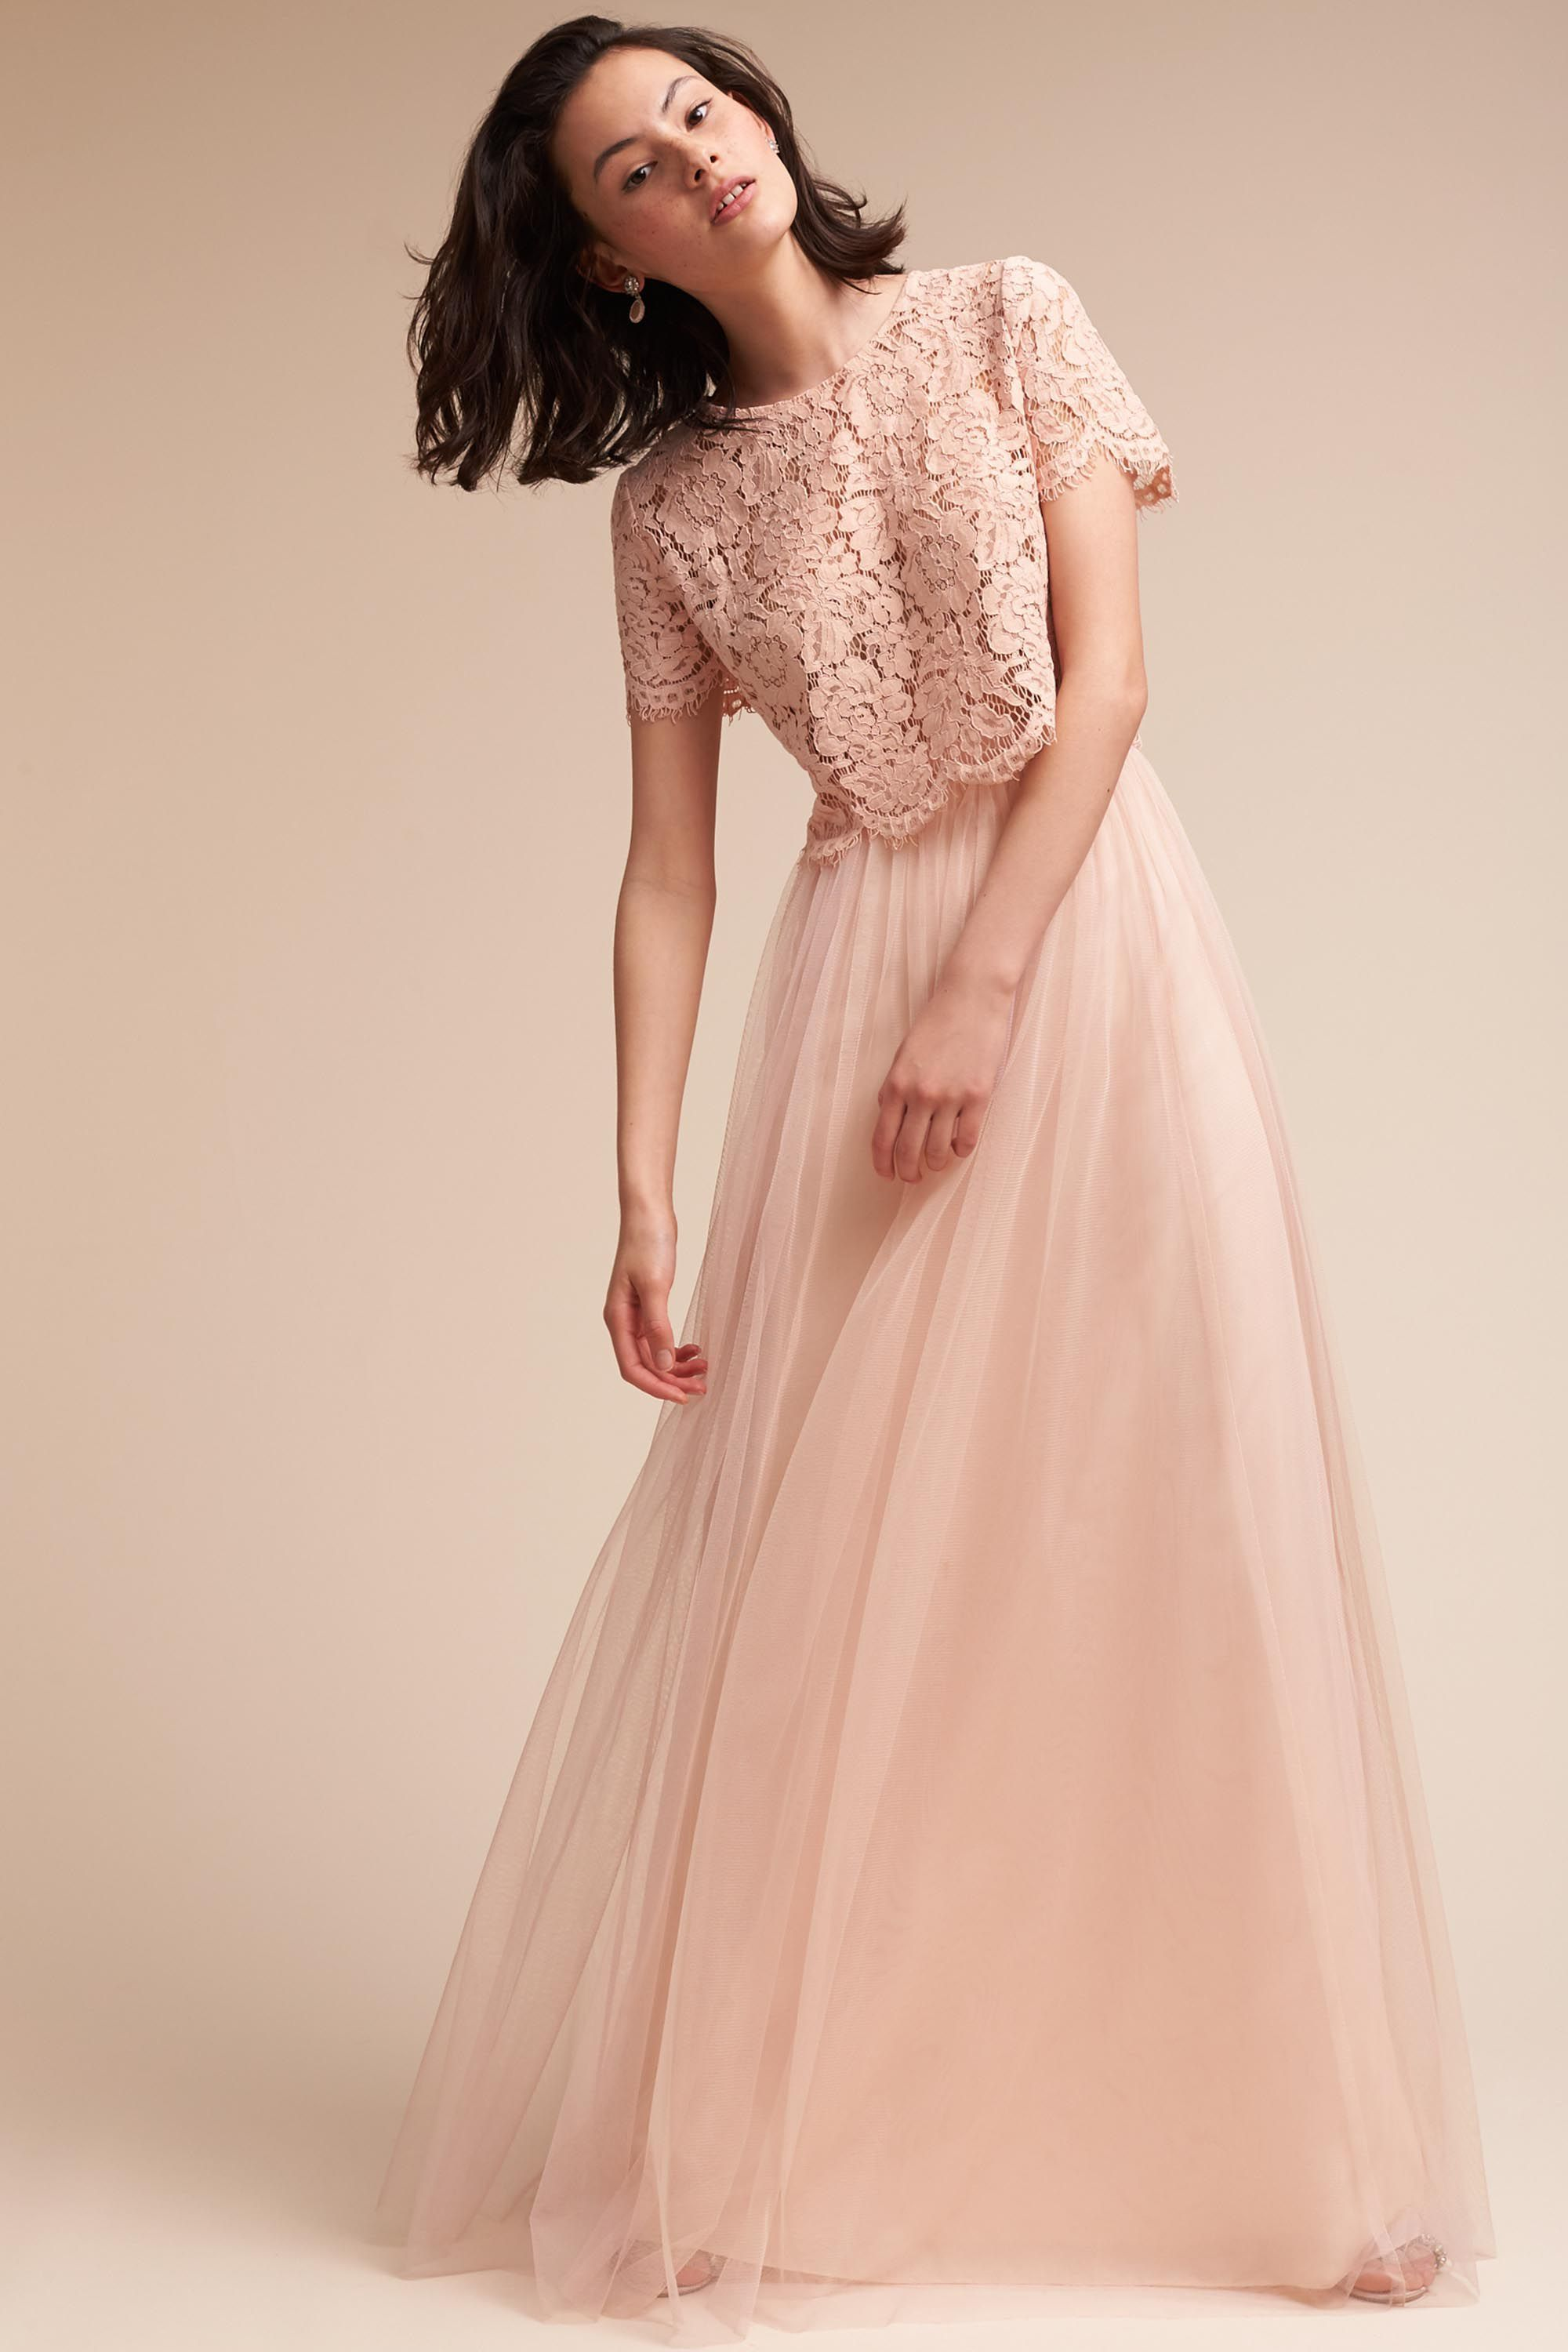 Best dresses to wear to a beach wedding  Kenzie Top u Louise Skirt from BHLDN  The Bridal Council